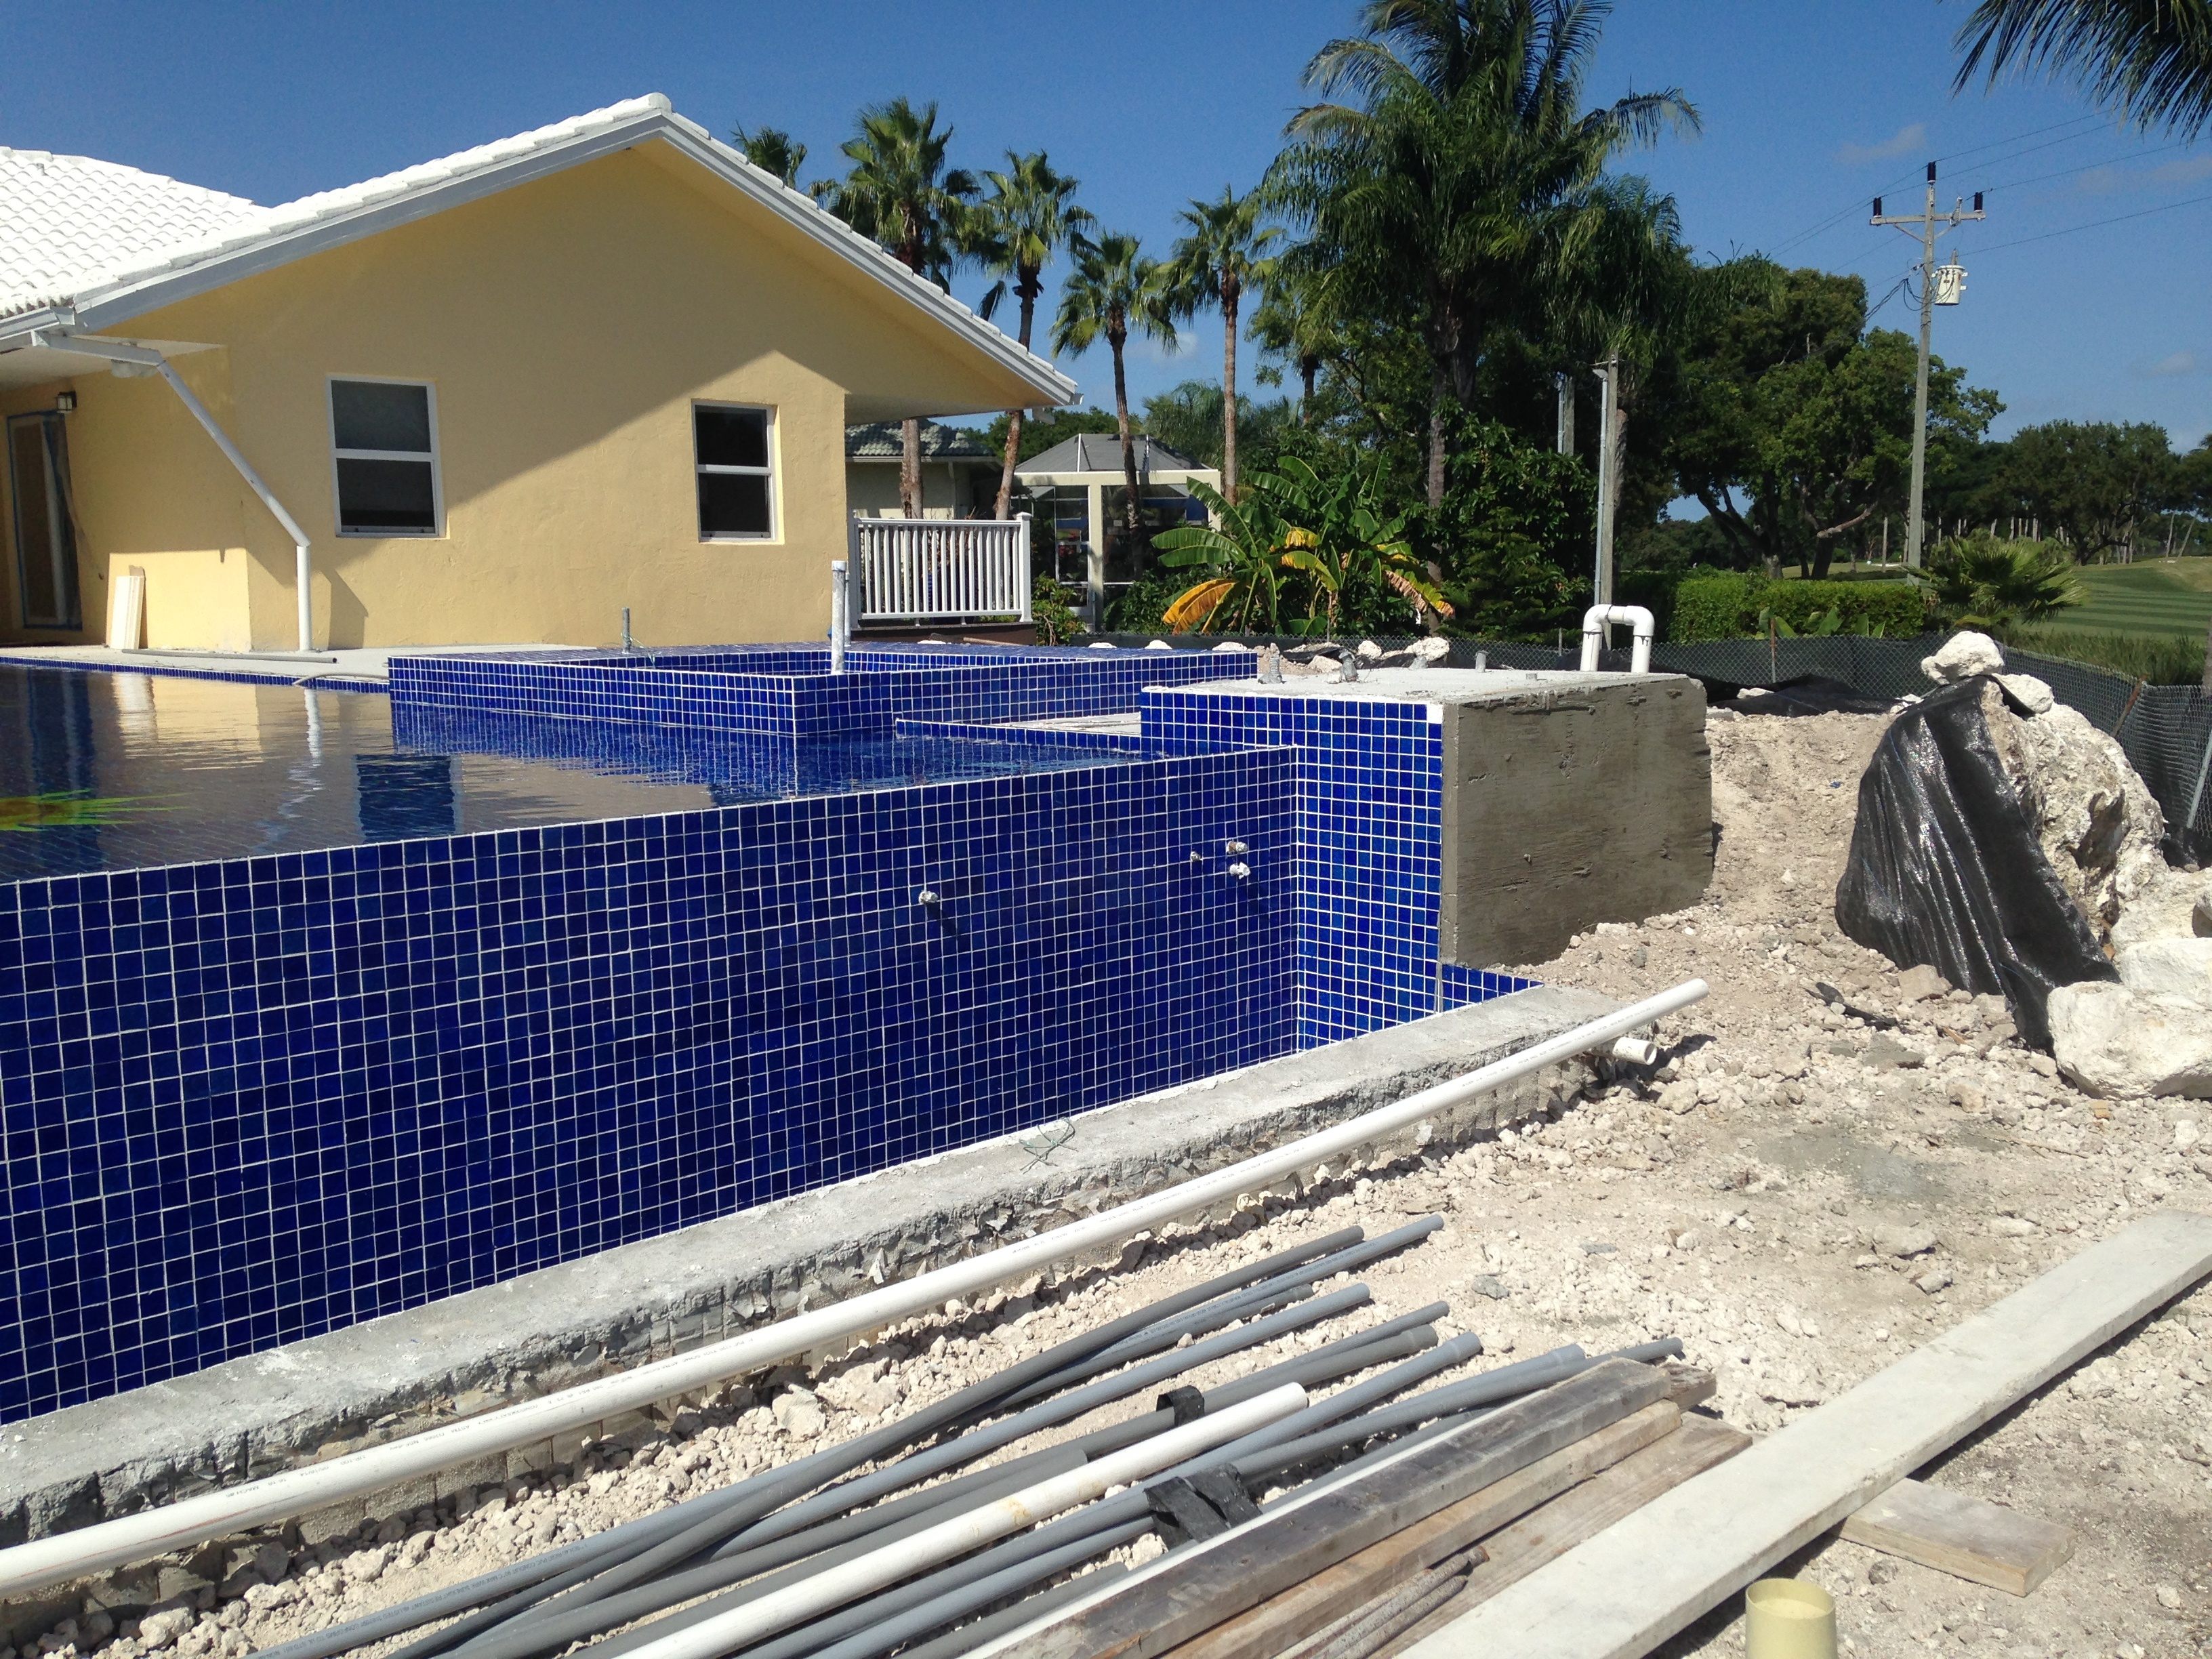 Pool spa services pool builders key largo miami for Spa construction